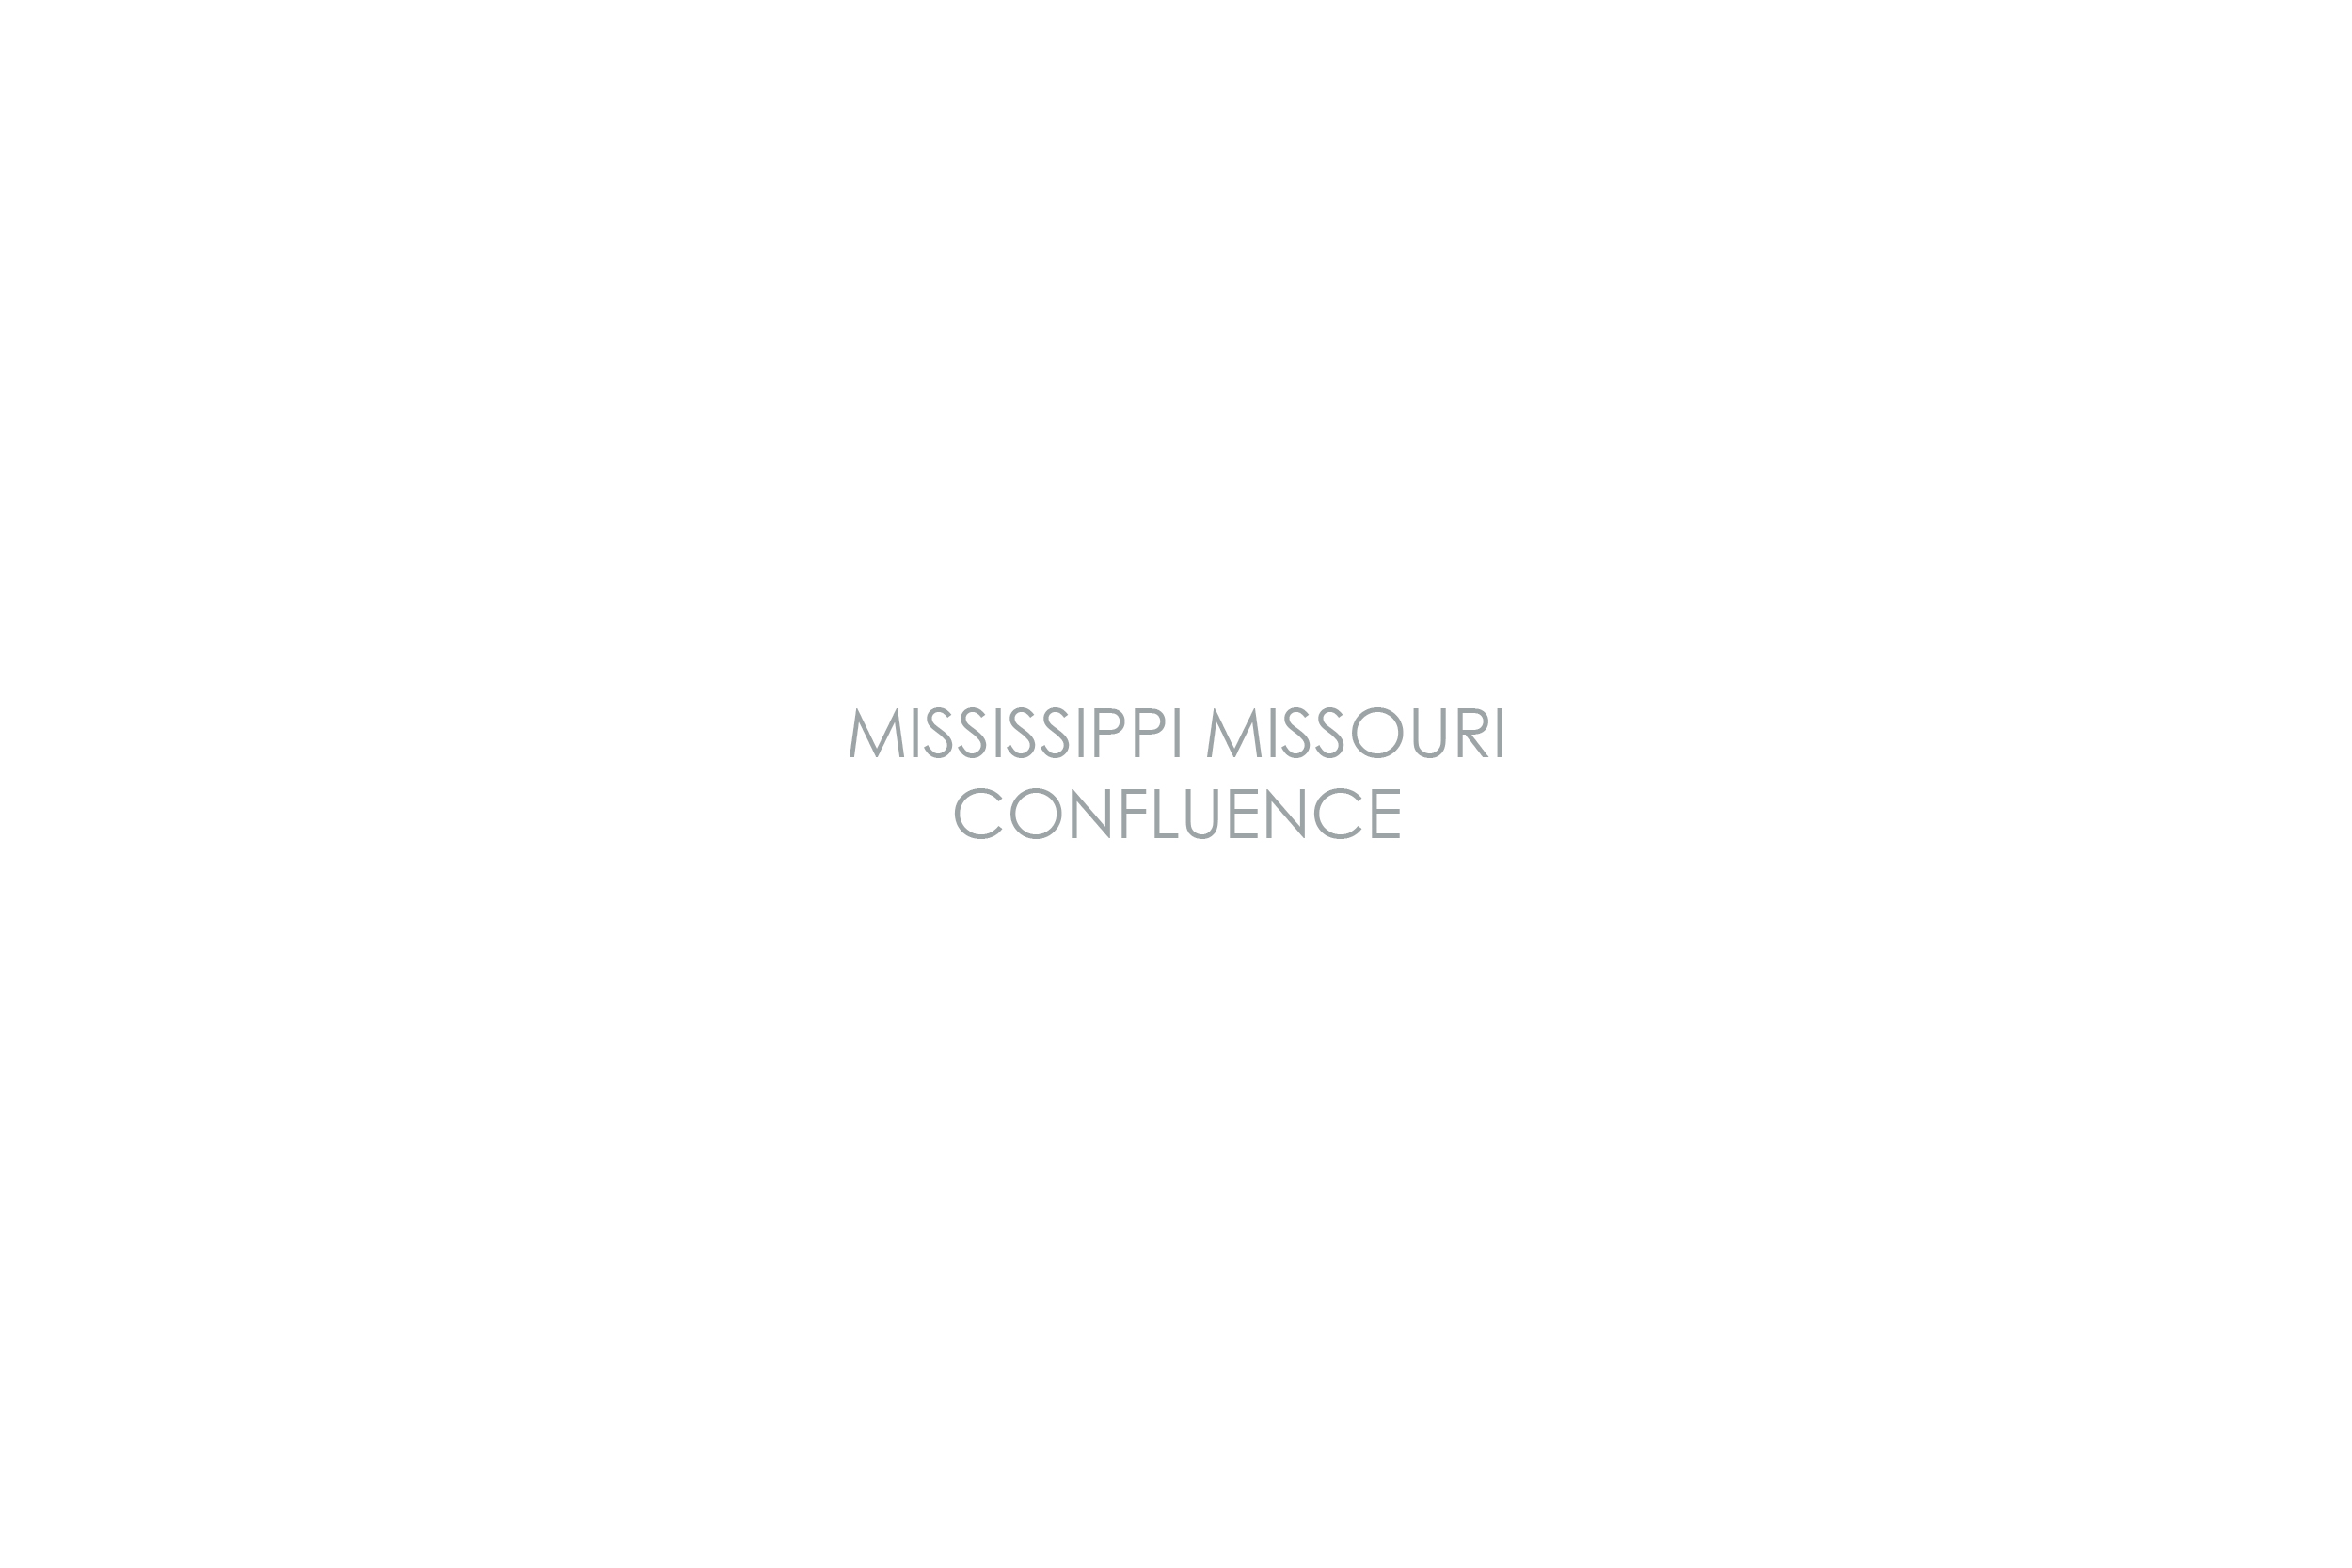 MISSISSIPPI AND MISSOURI RIVER CONFLUENCE